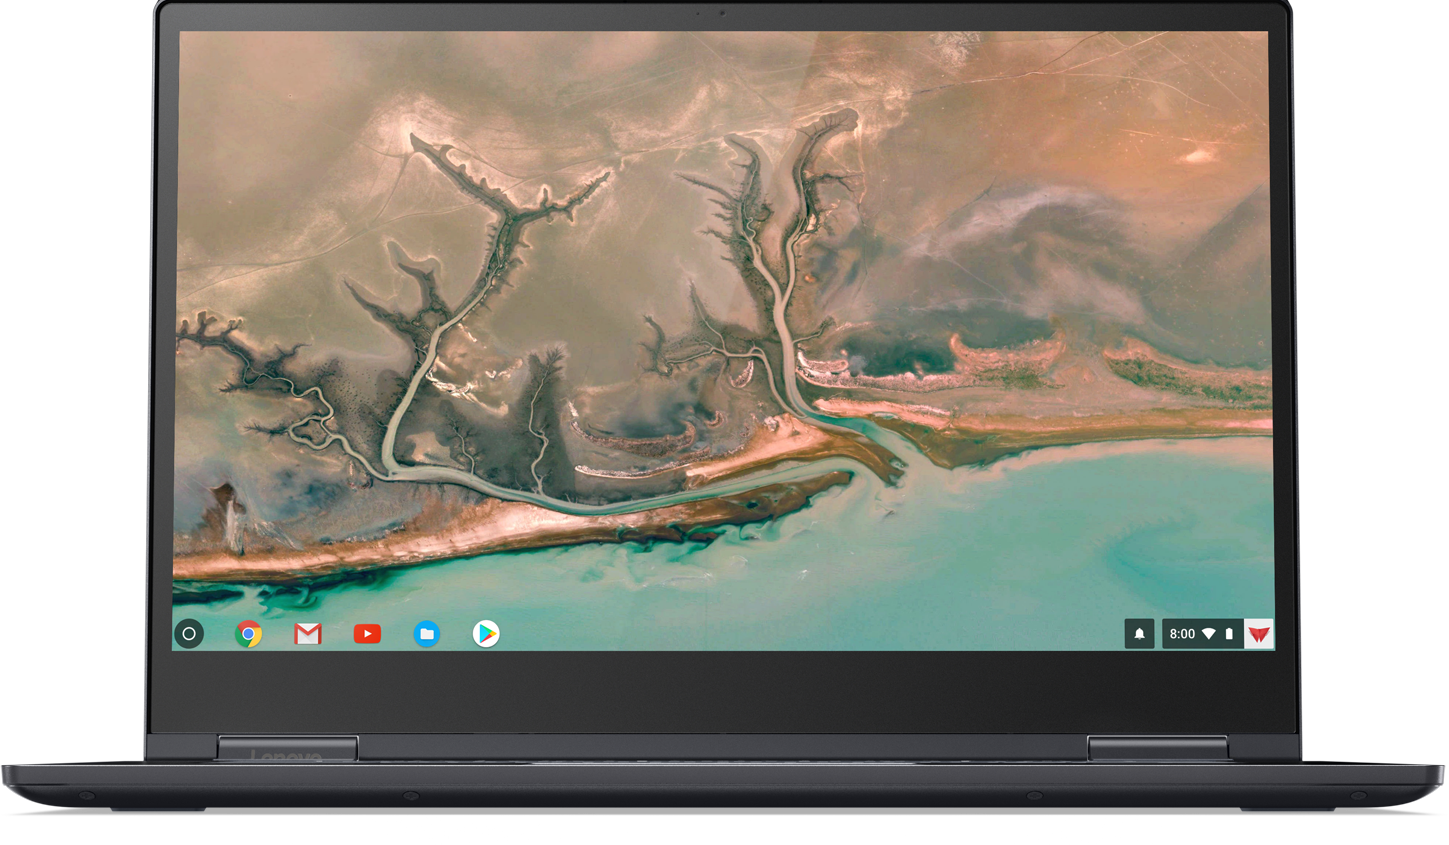 Lenovo Yoga Chromebook C630 81JX0000US - ChromebookDB